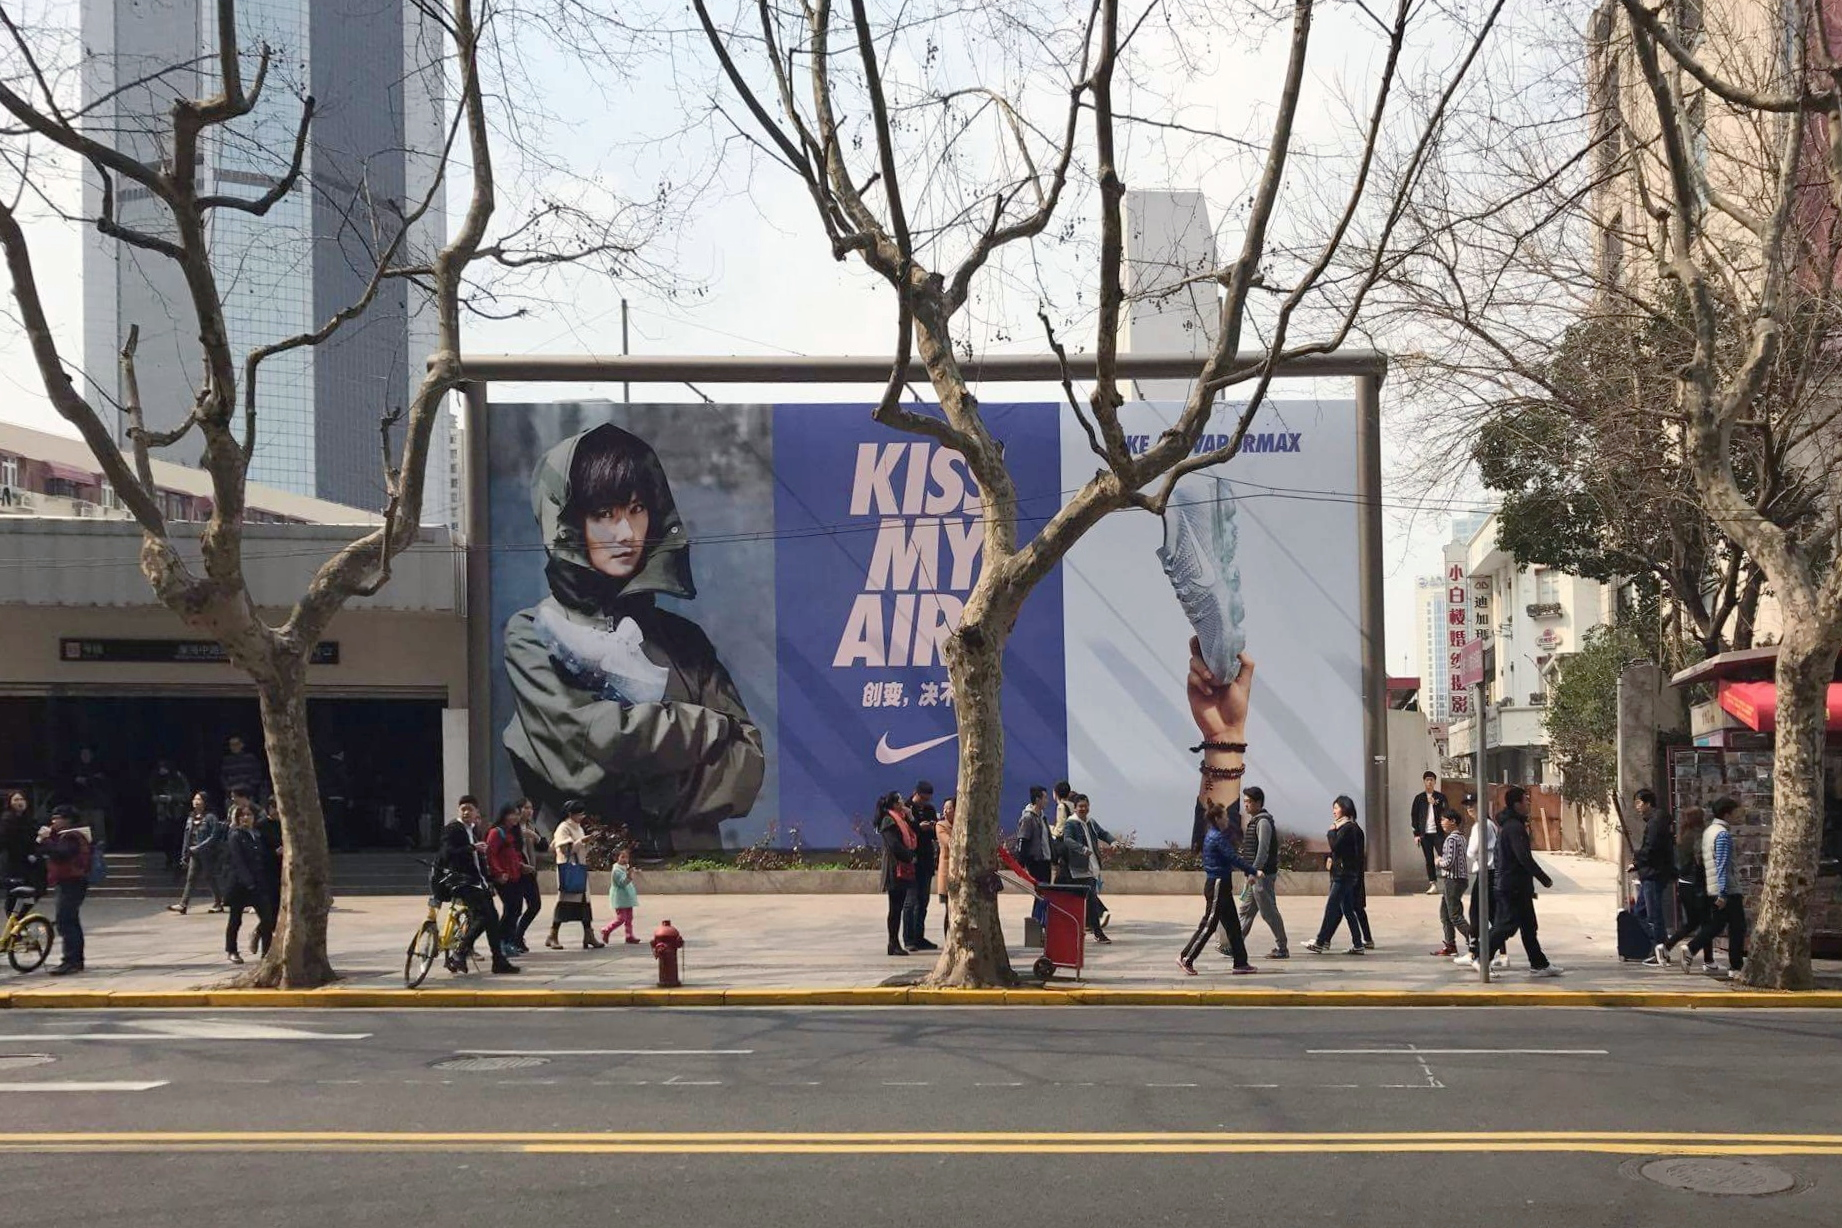 Nike Kiss My Airs Shanghai, China